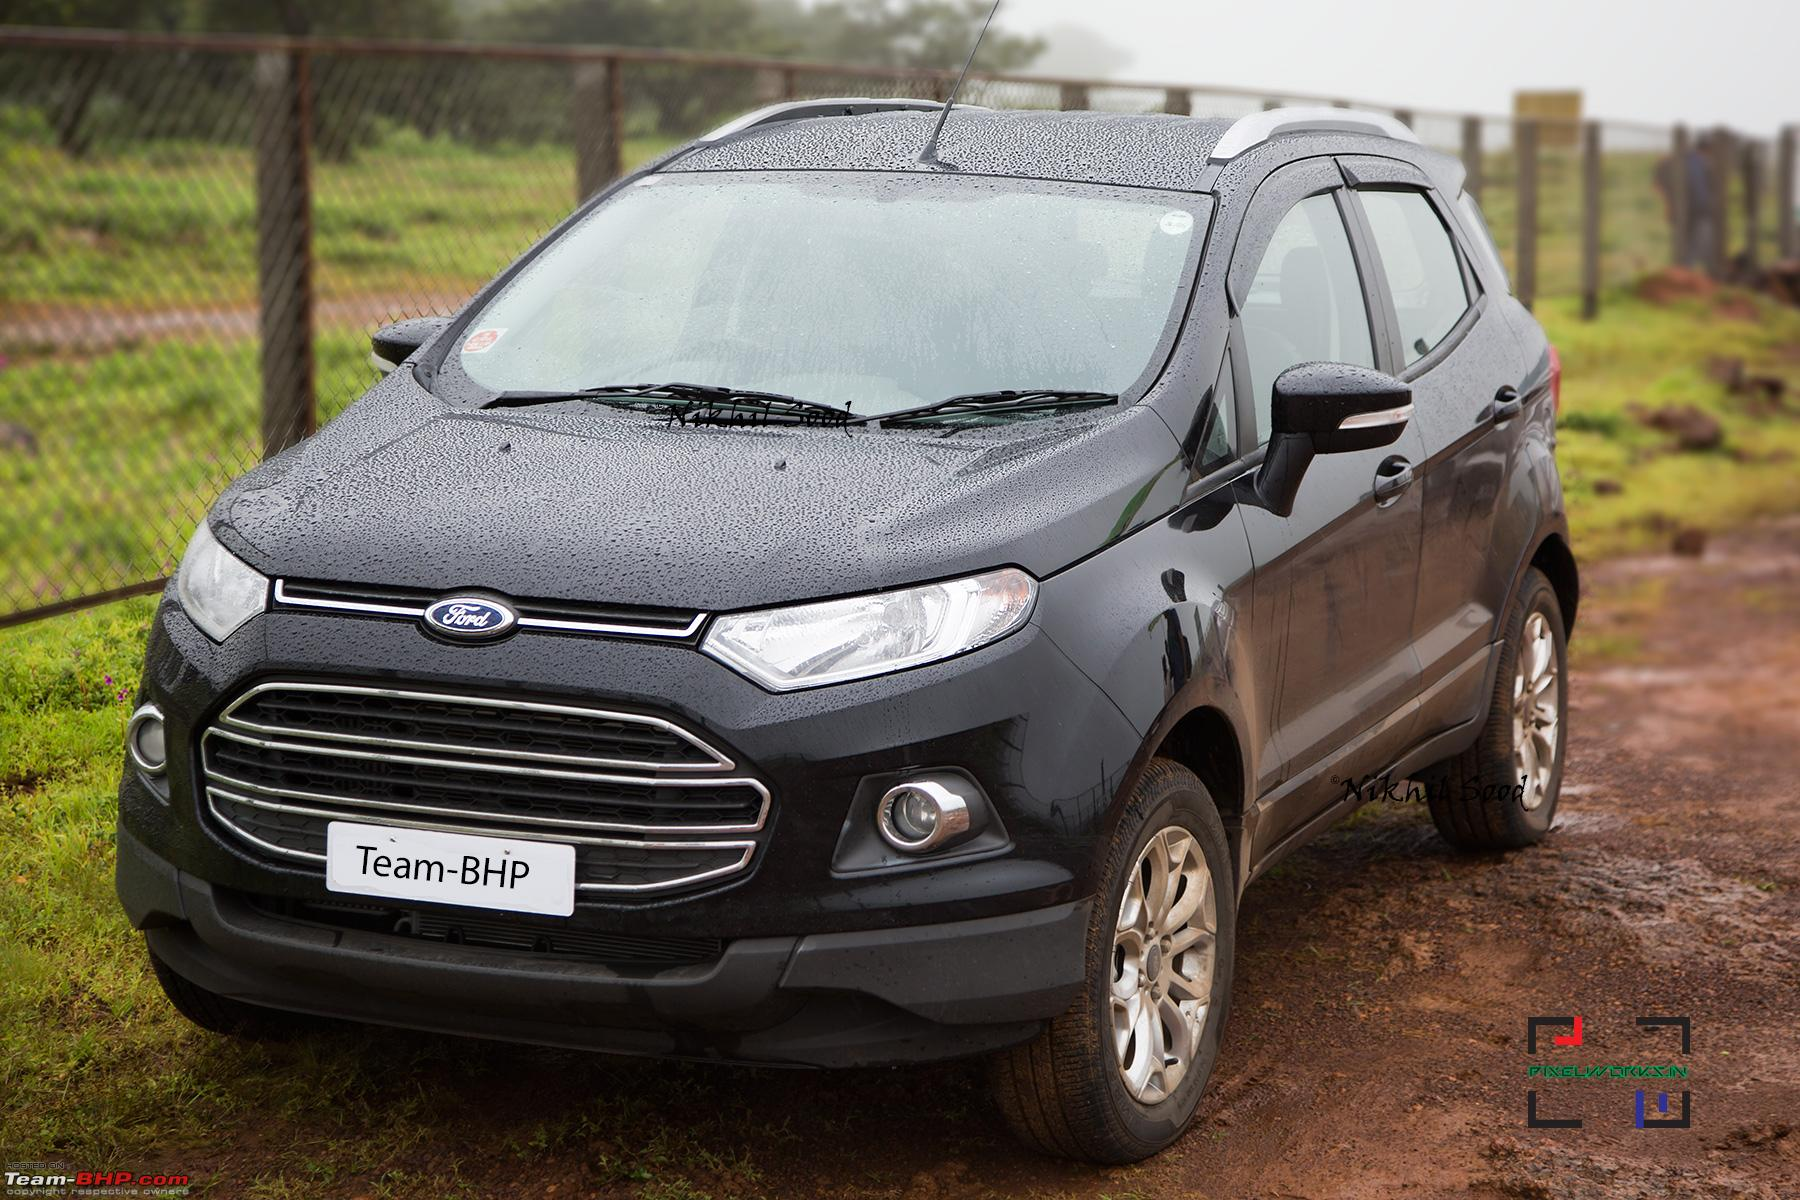 Ford Ecosport Official Review Eco_drops Jpg